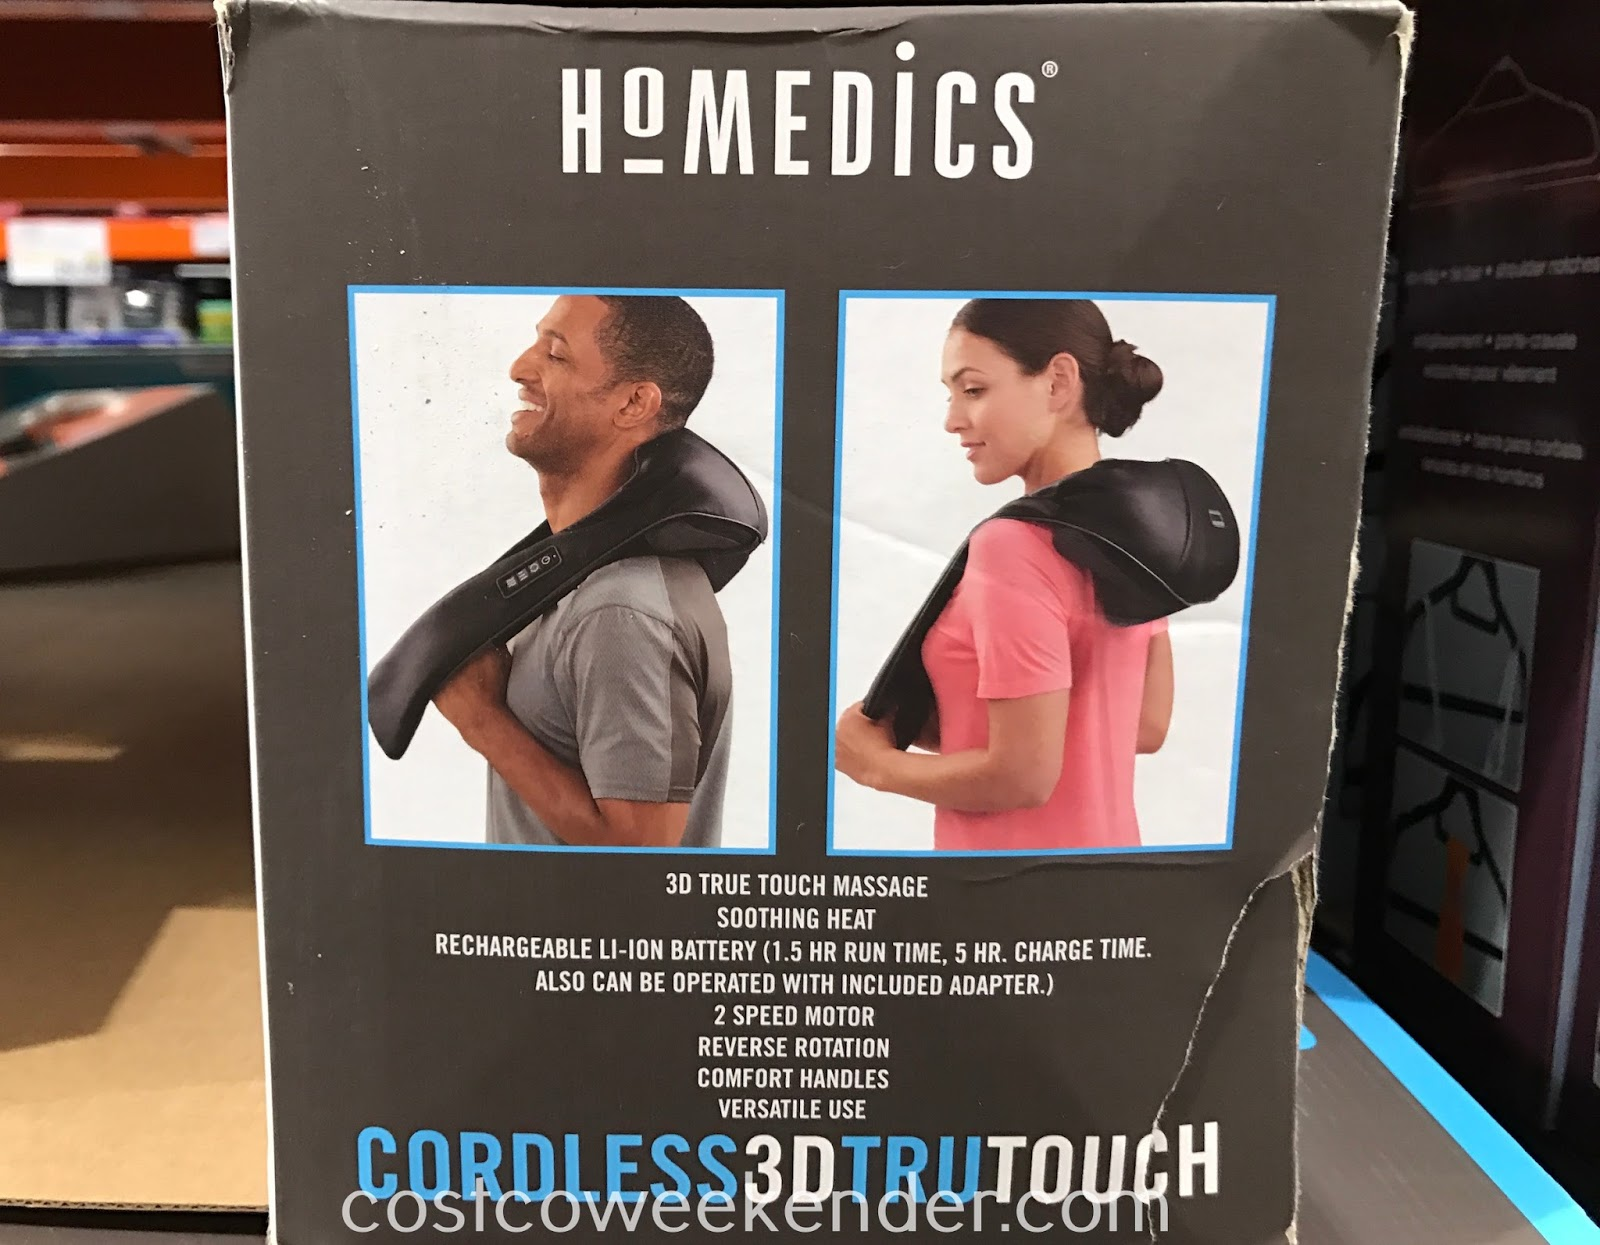 Costco 1163264 - HoMedics Cordless 3D Tru Touch Neck & Shoulder Massager: great for tense muscles